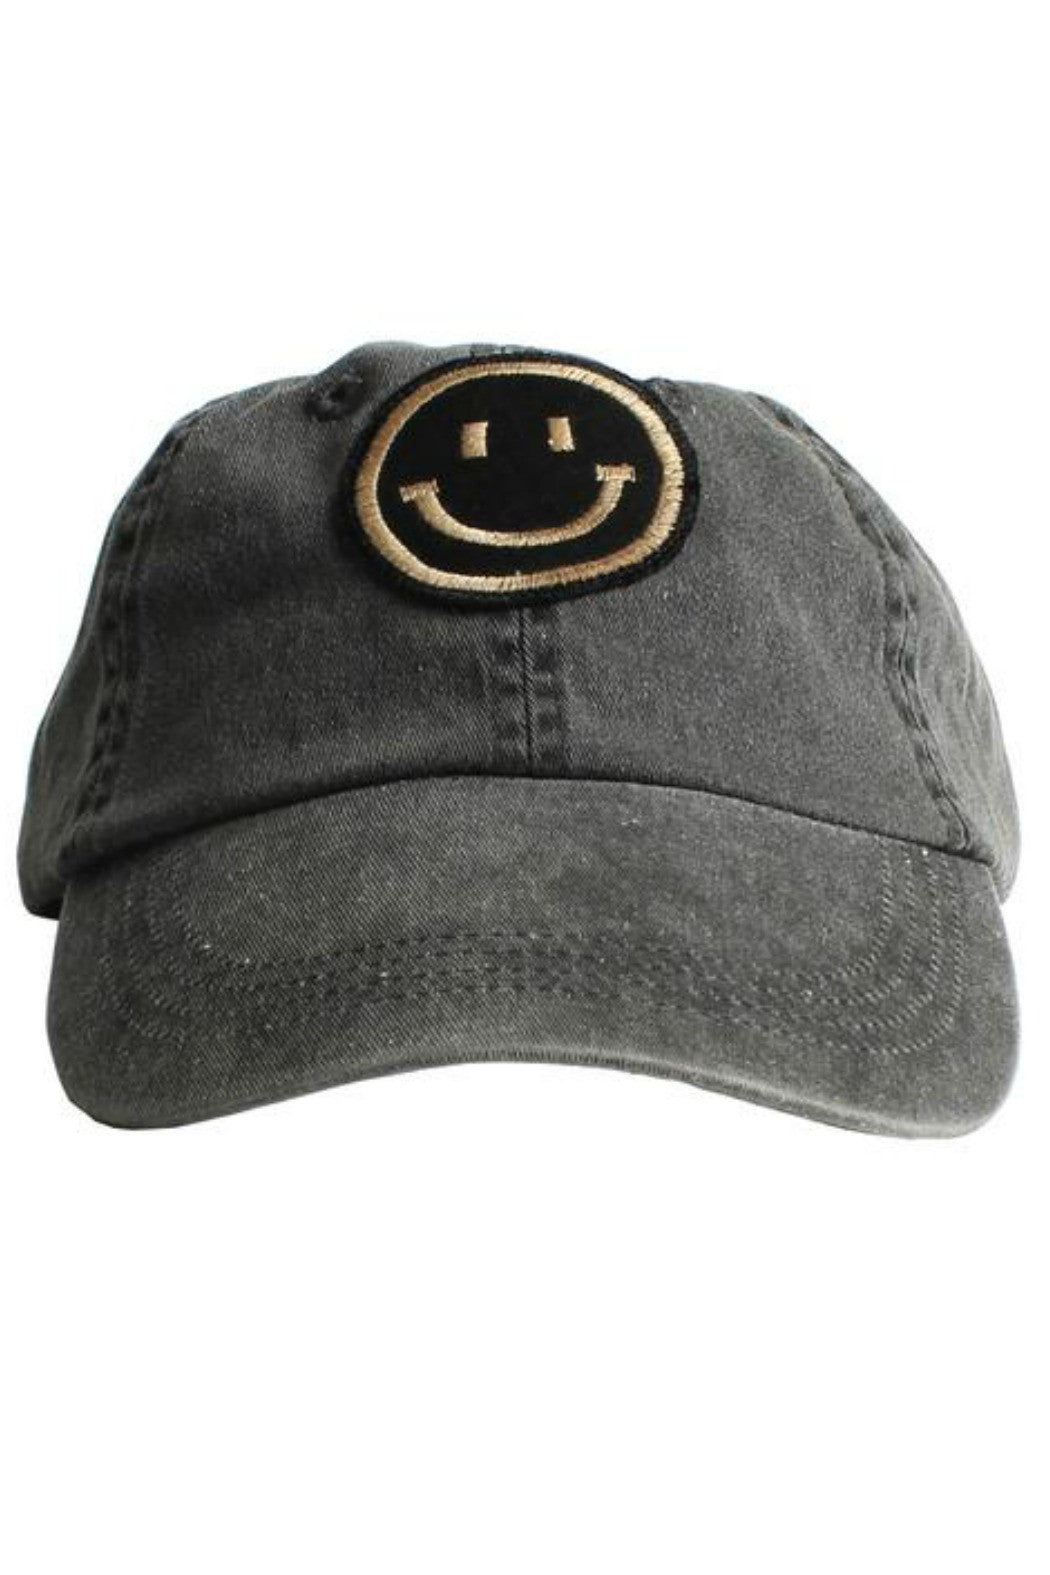 Smile Patch 6-Panel Cap - R+D Hipster Emporium | Womens & Mens Clothing